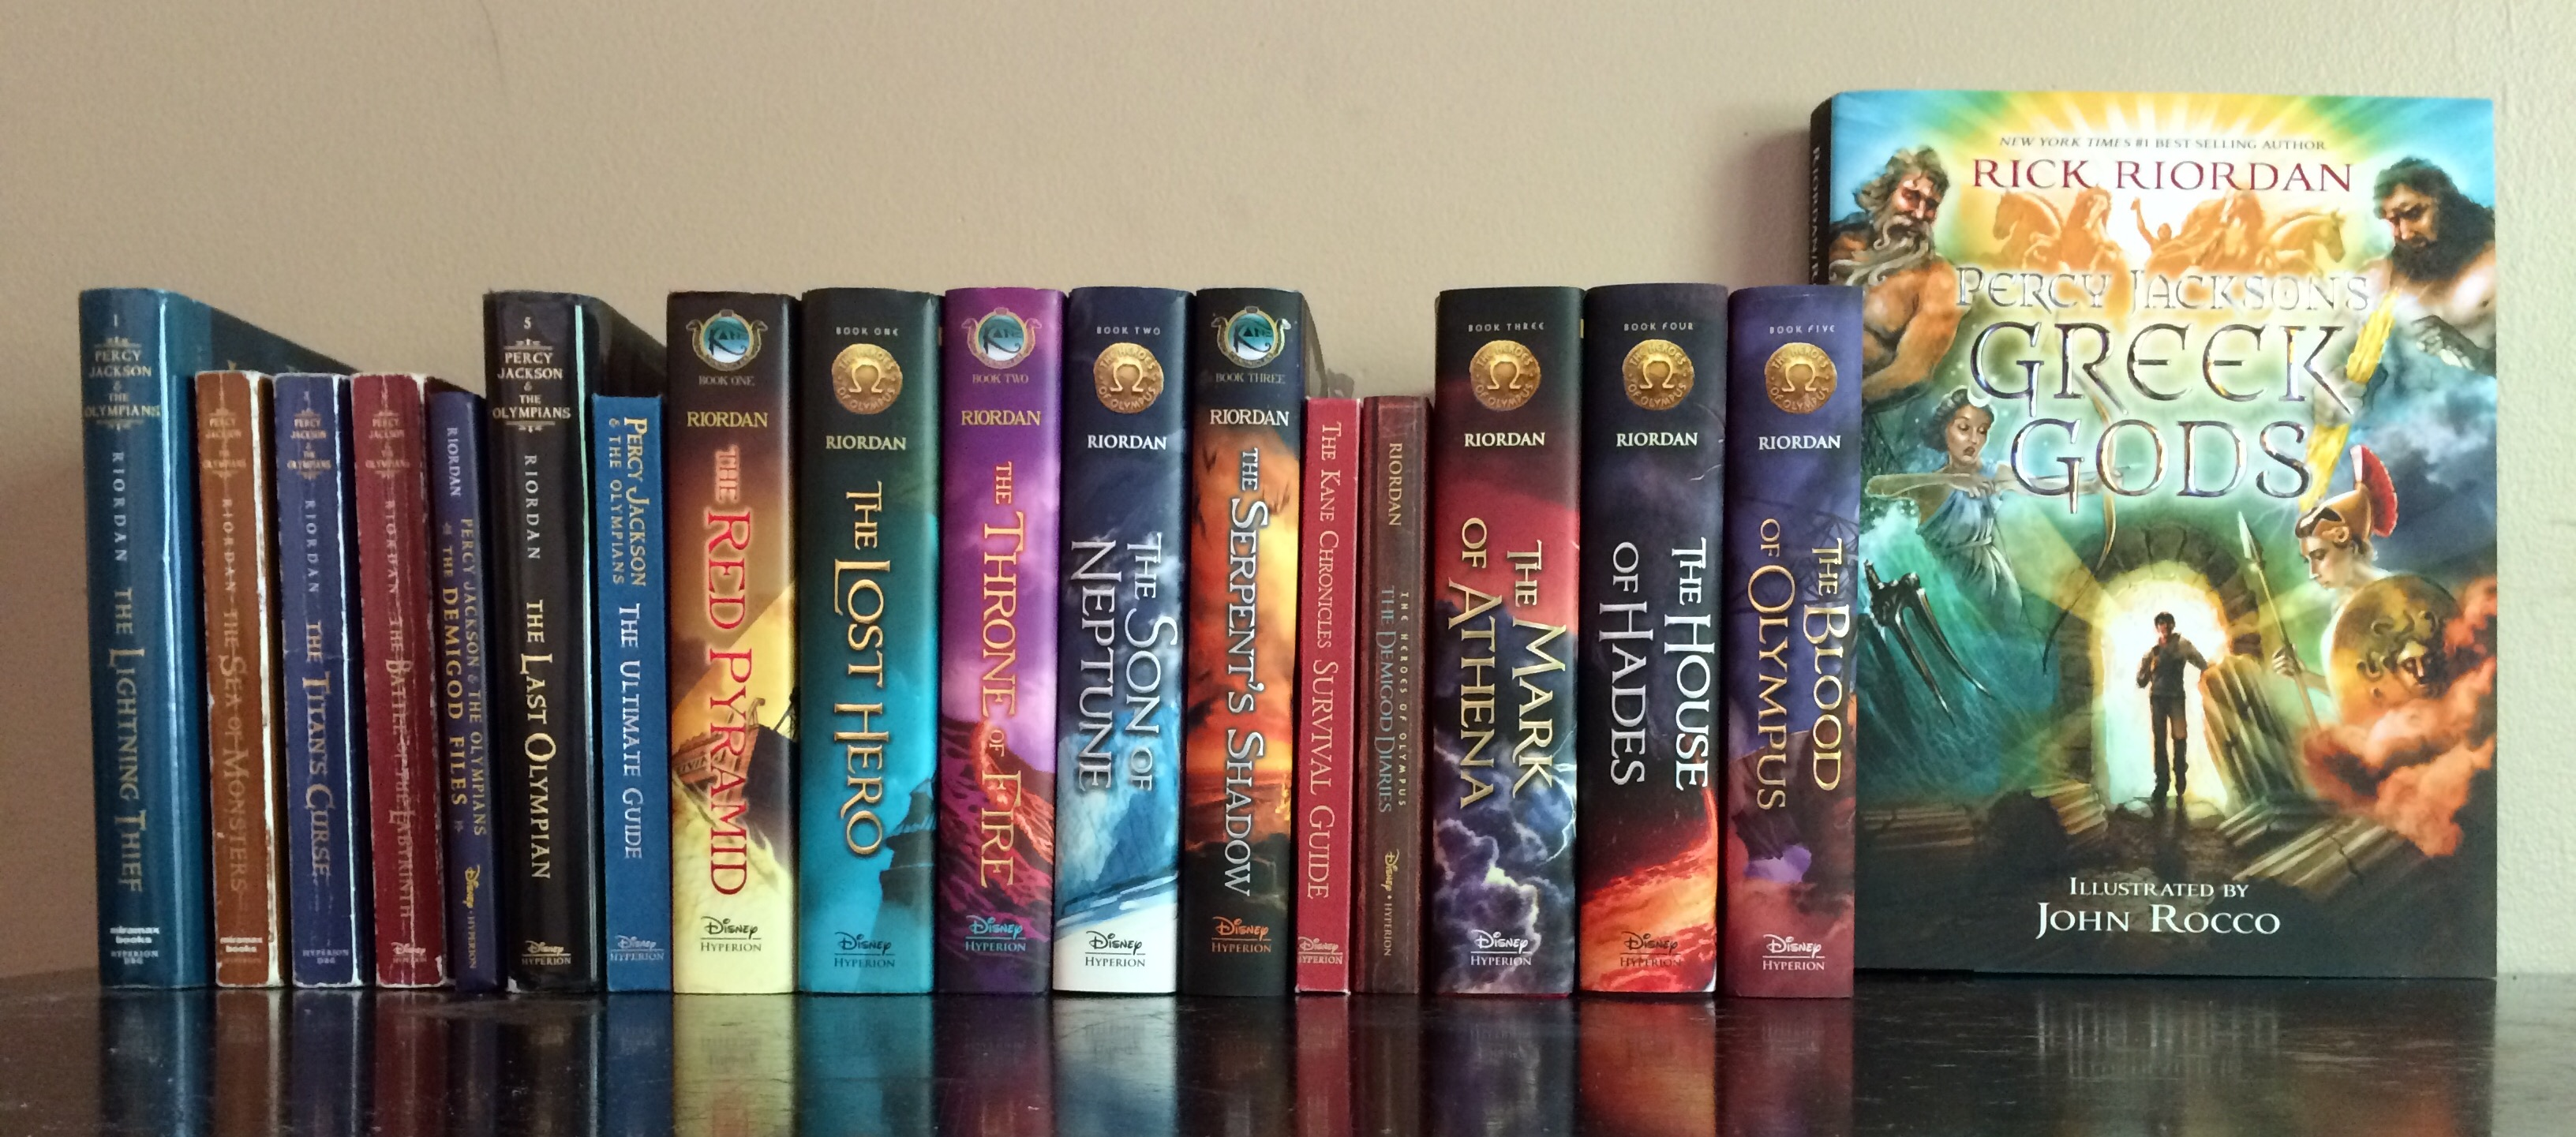 rick riordan wcps online high school book clubs